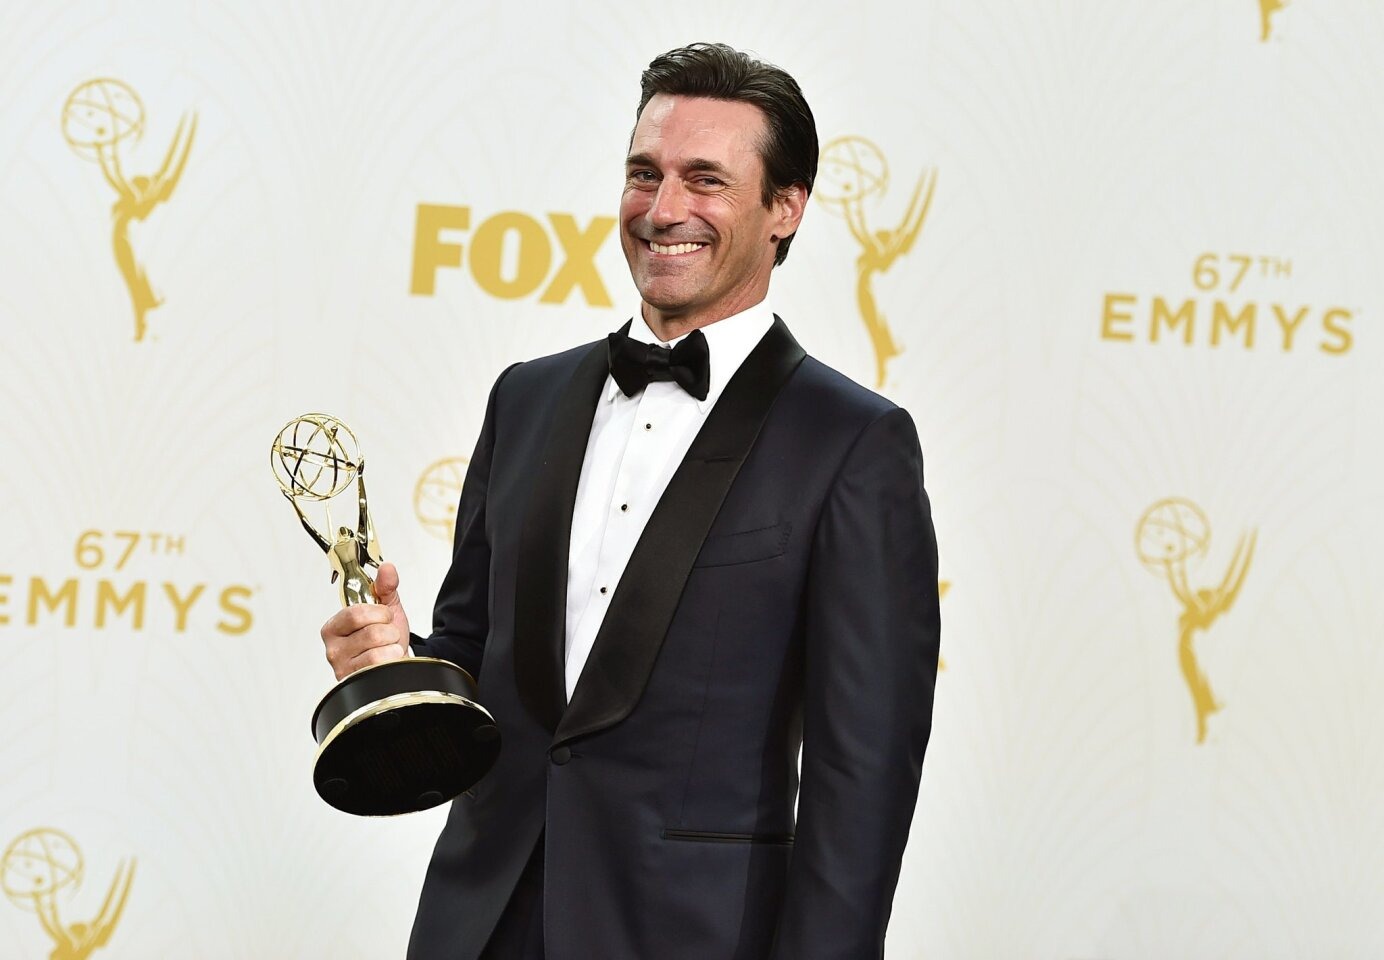 """Jon Hamm with the award for outstanding lead actor in a drama series for """"Mad Men"""" poses in the press room at the 67th Primetime Emmy Awards on Sunday, Sept. 20, 2015, at the Microsoft Theater in Los Angeles. (Photo by Jordan Strauss/Invision/AP)"""